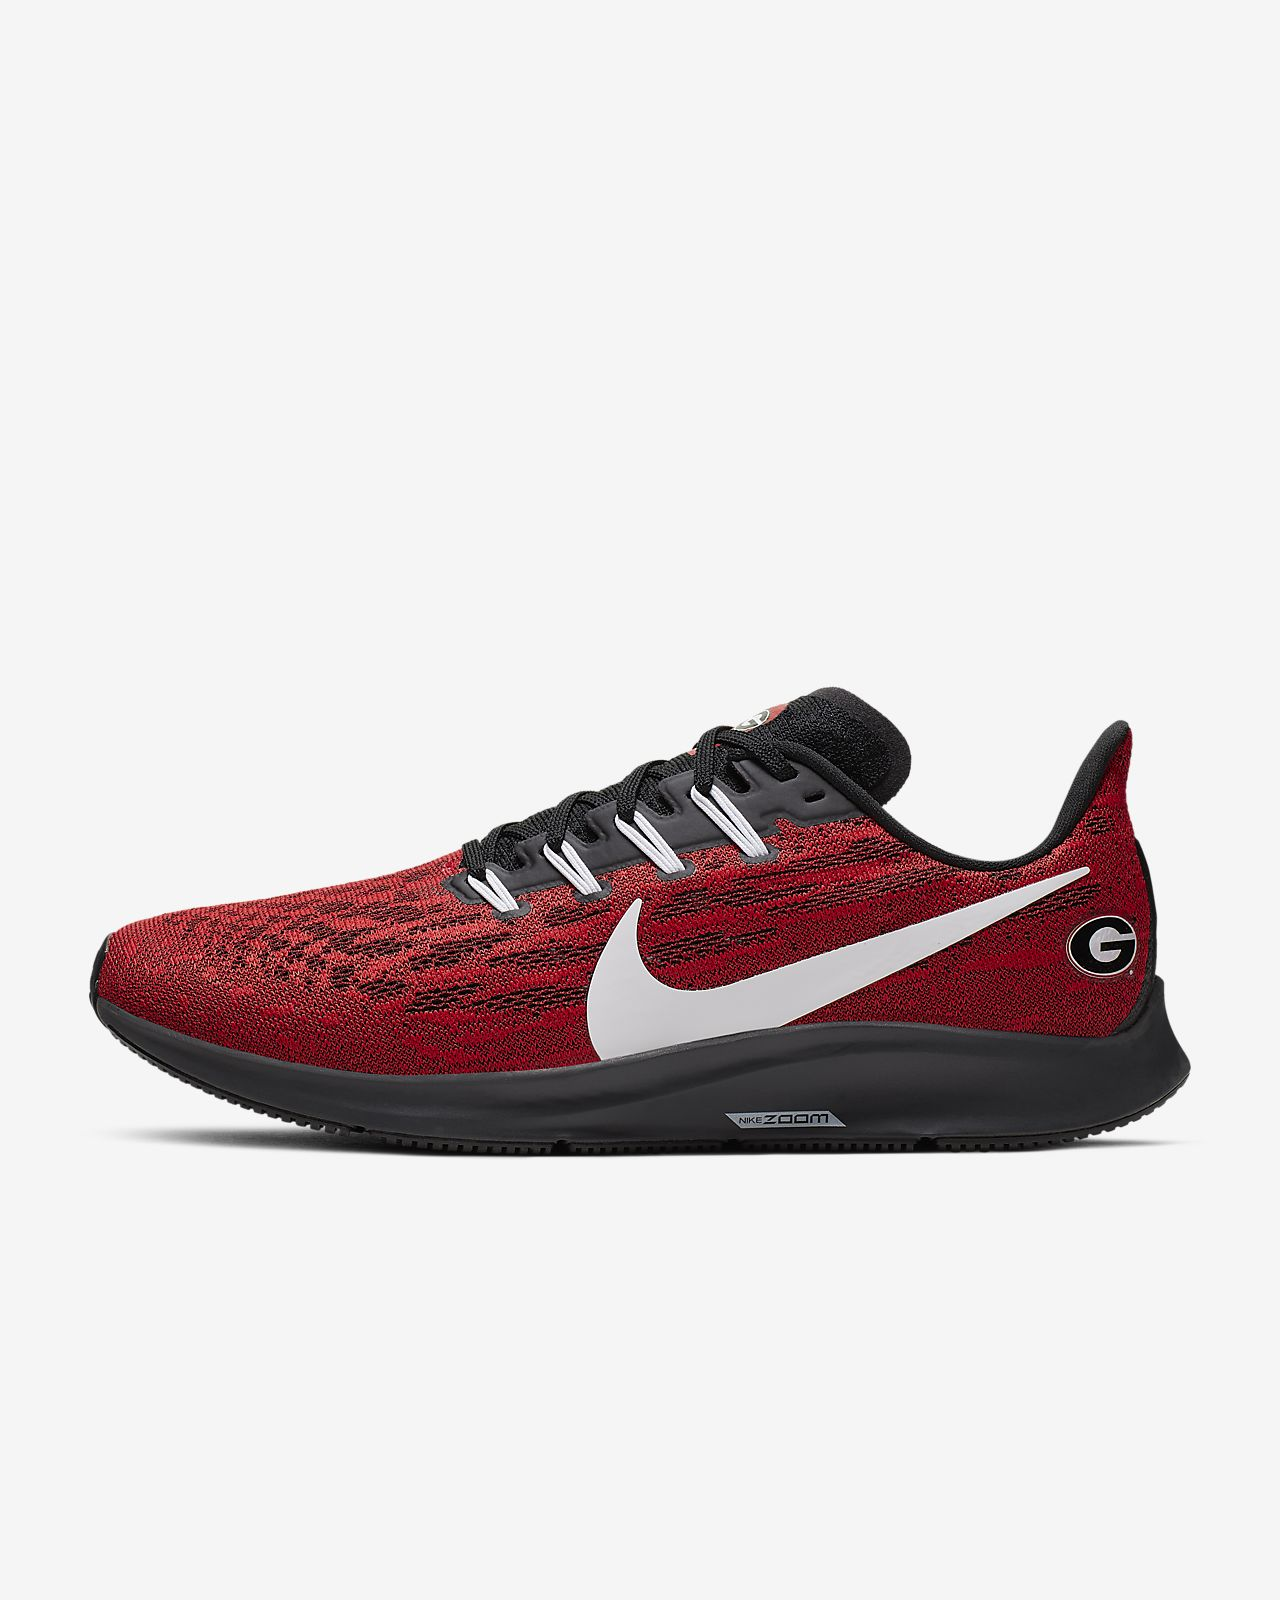 Nike Air Zoom Pegasus 36 (Georgia) Men's Running Shoe